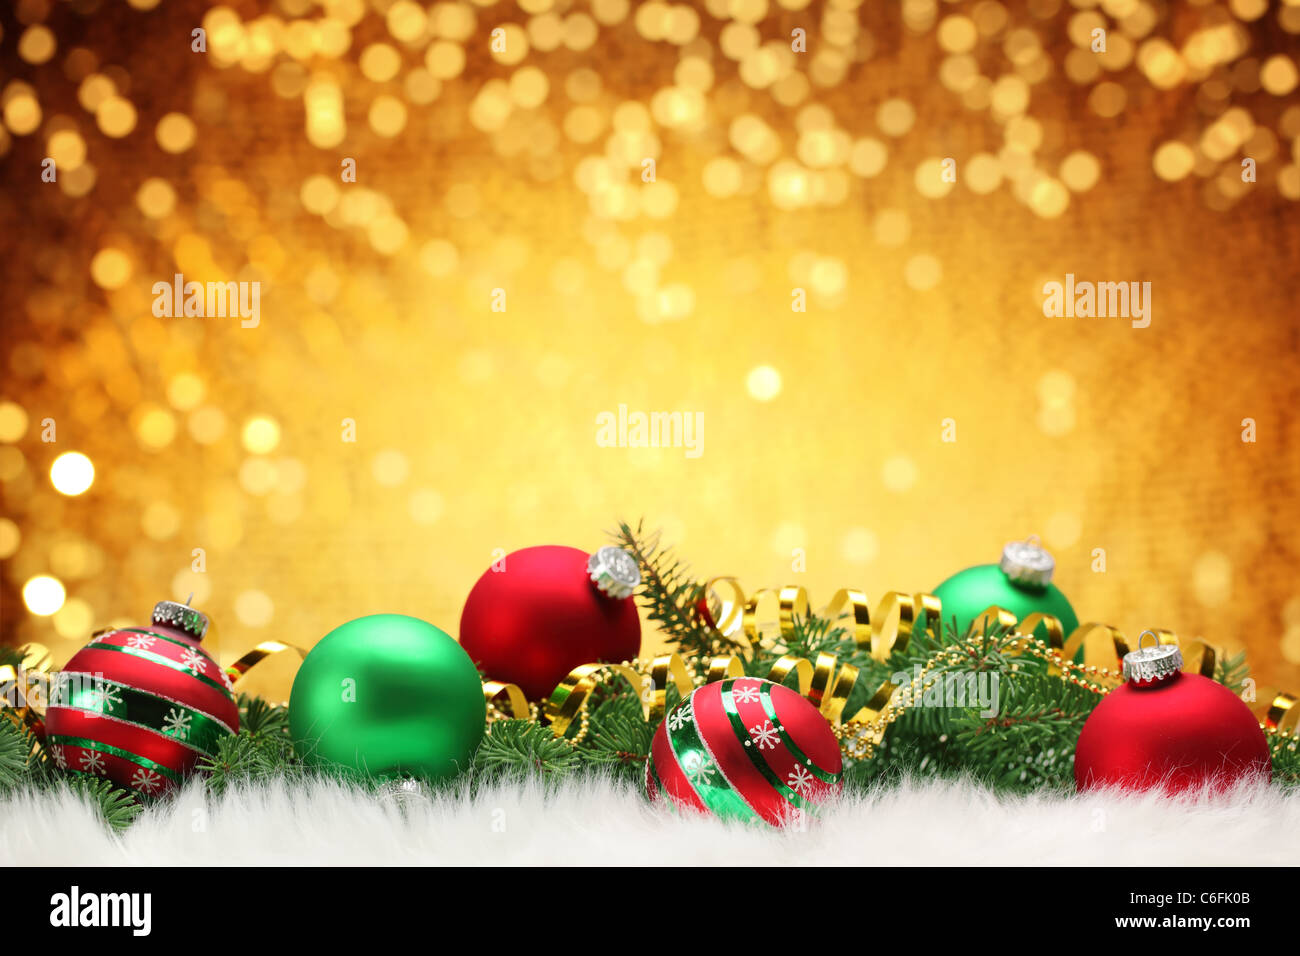 Christmas balls with pine branch on festive background. - Stock Image